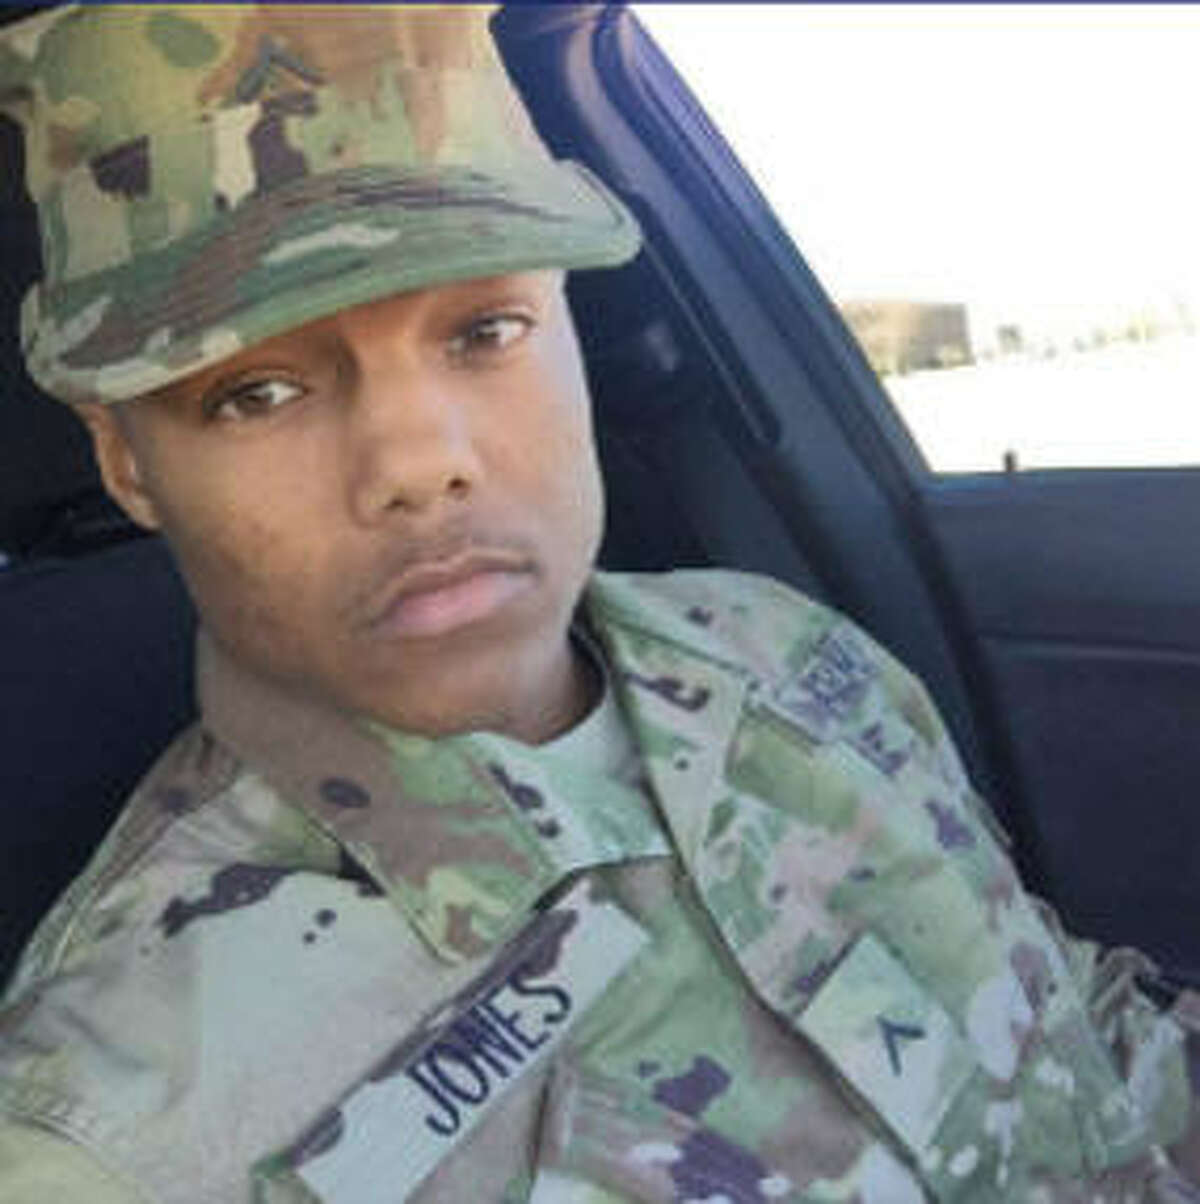 On leave Melvin Jones, a U.S. Army soldier based at Fort Bliss in West Texas, was on leave when he was last heard from on Dec. 19, 2016. He won't be considered AWOL until late January.